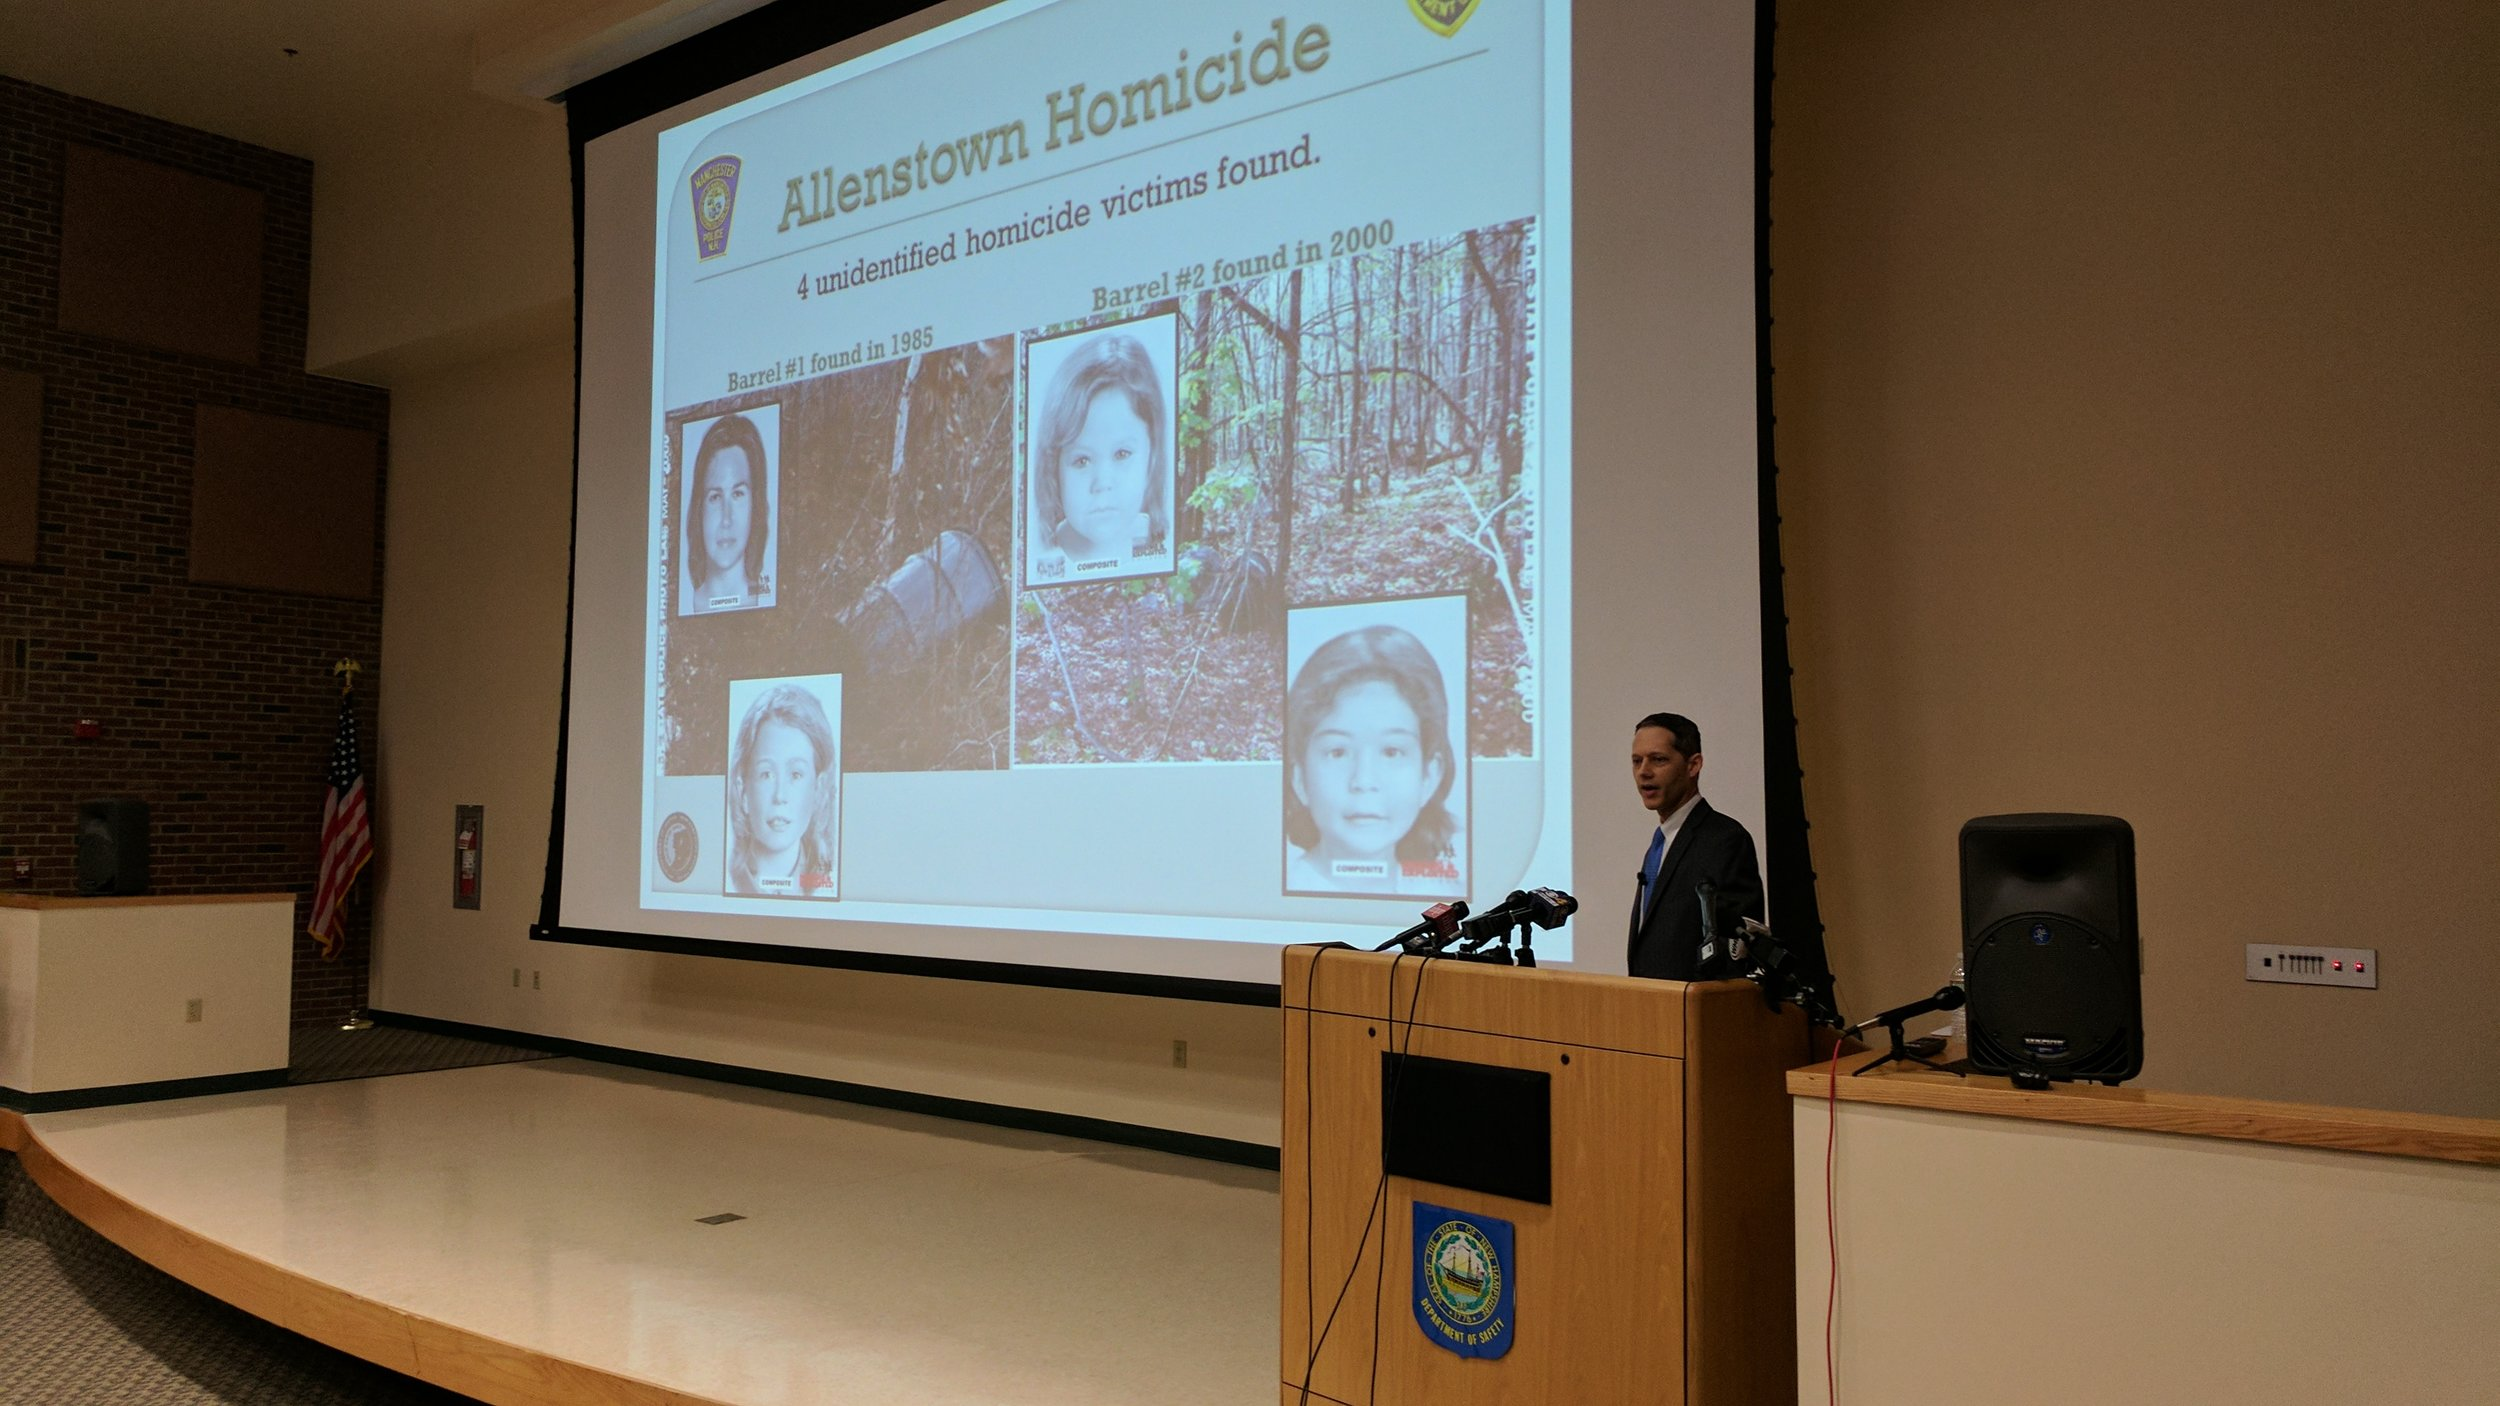 At a 2017 press conference, Senior Assistant Attorney General Jeff Strelzin announced that while the Allenstown victims were still unidentified, their killer was known.